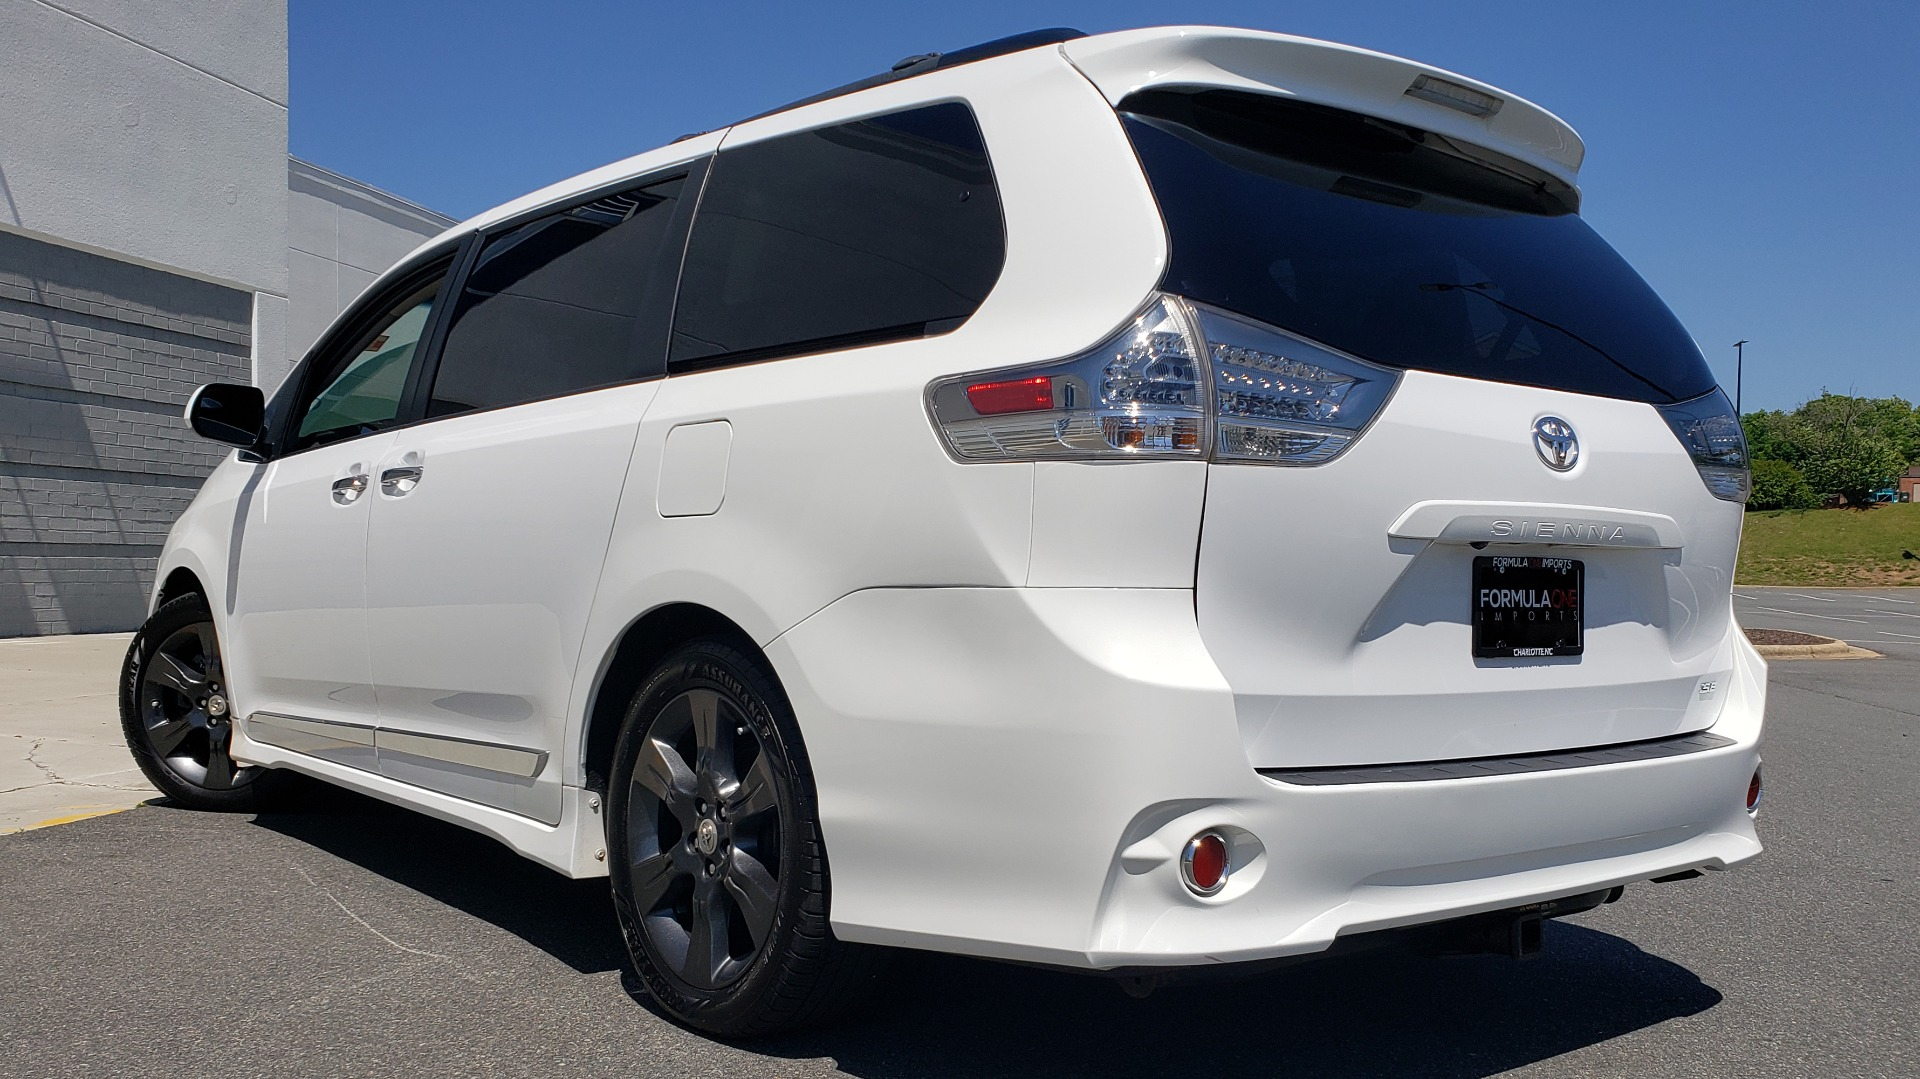 Used 2015 Toyota SIENNA SE 3.5L / FWD / 3-ROWS / 8-PASS / SUNROOF / DVD / REARVIEW for sale $21,995 at Formula Imports in Charlotte NC 28227 2